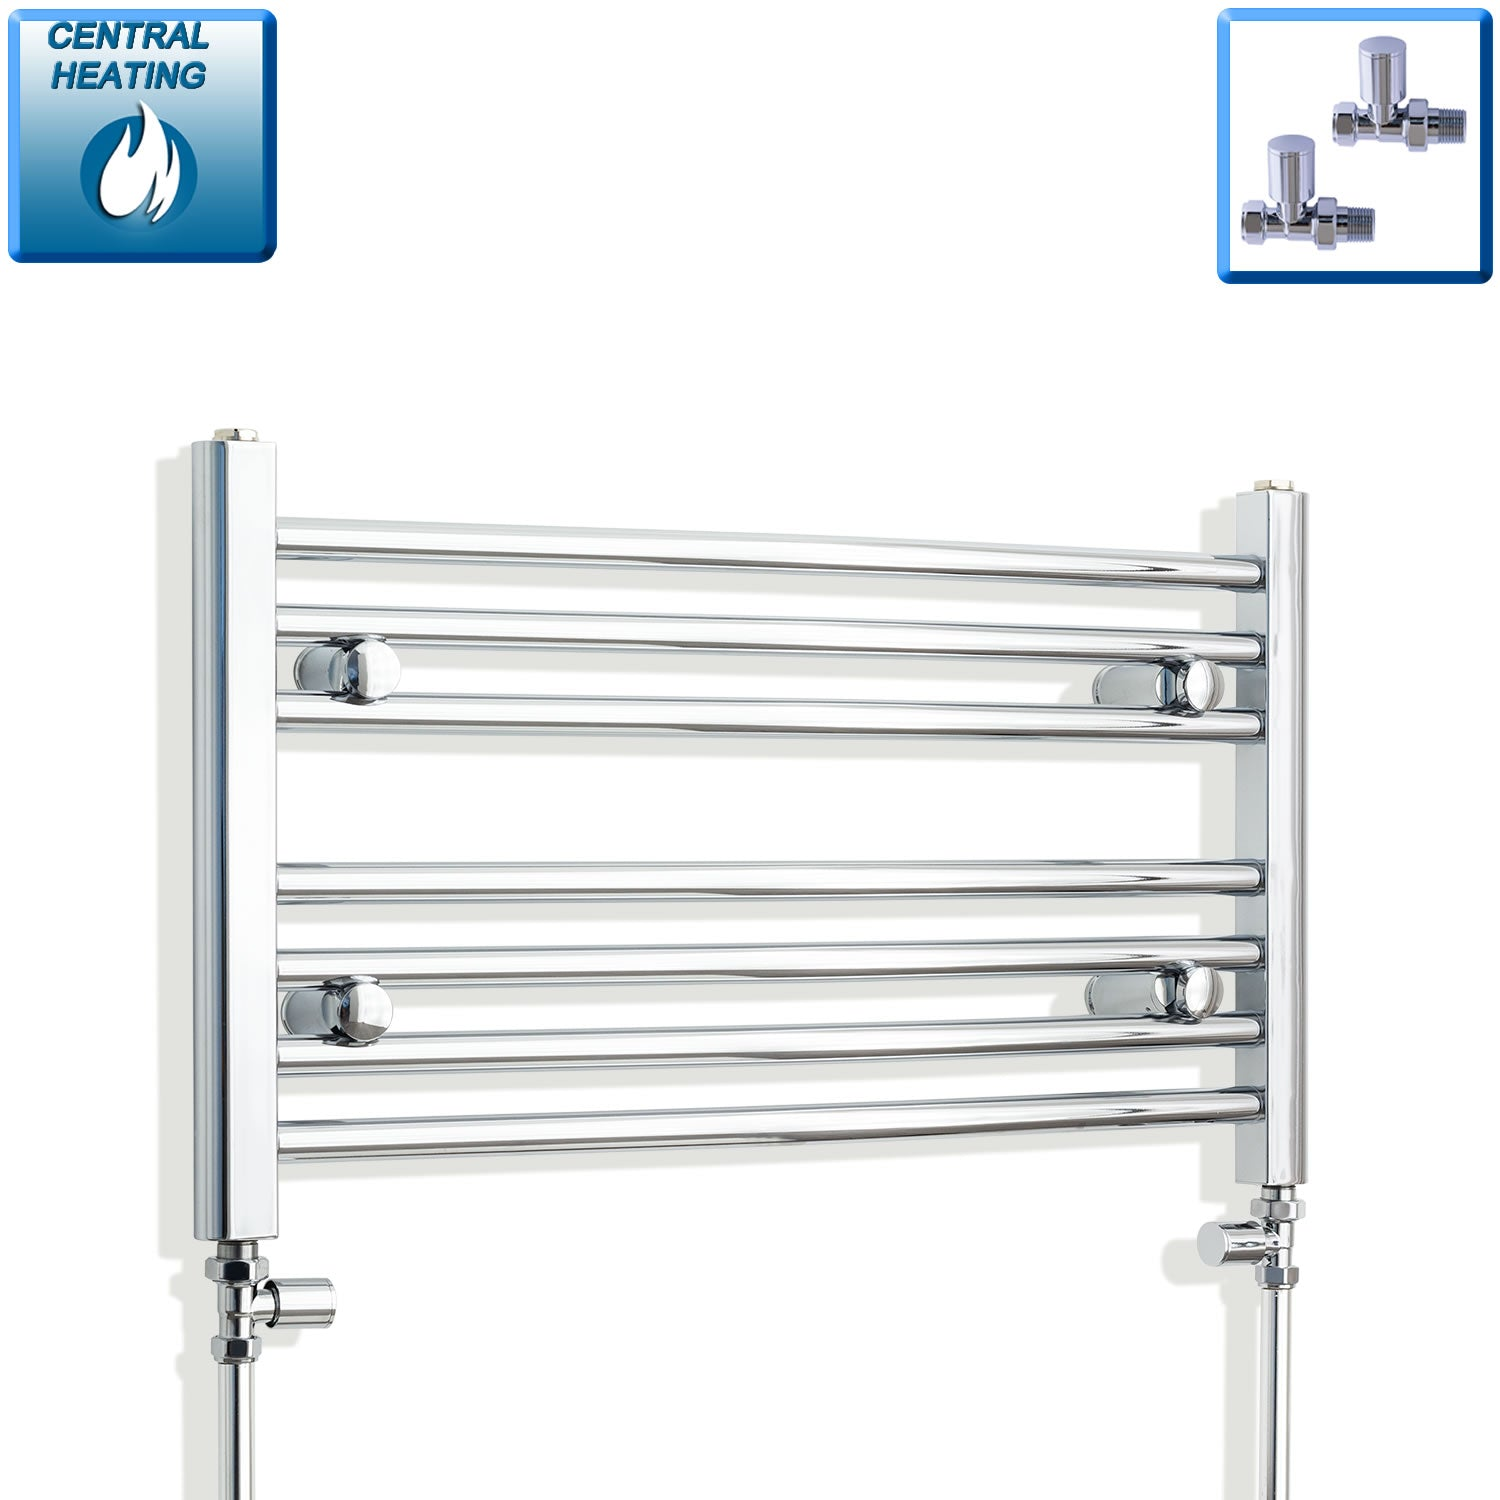 700mm Wide 400mm High Chrome Towel Rail Radiator With Straight Valve